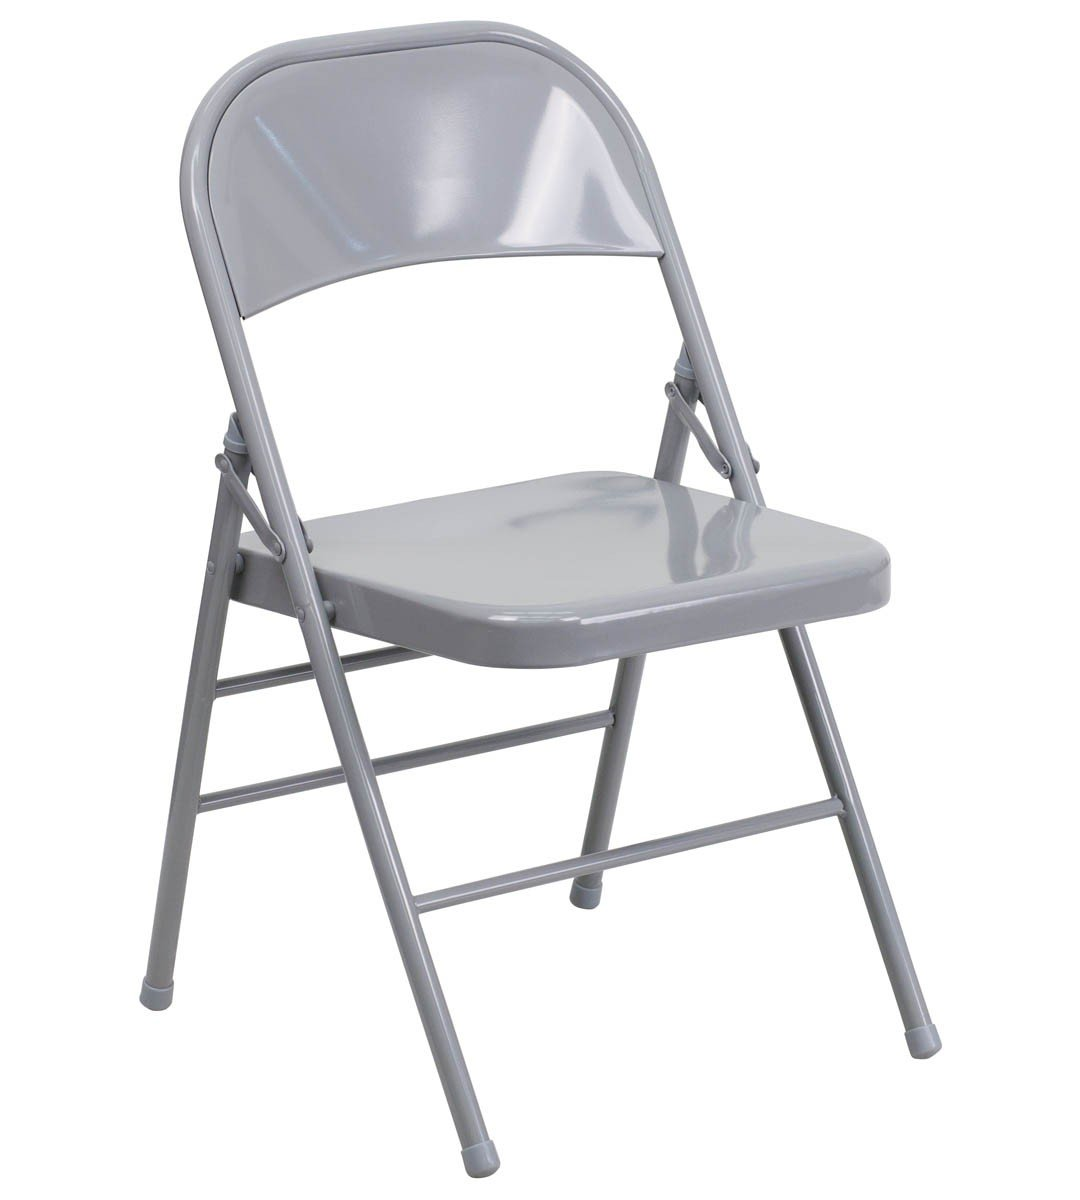 Easy way to sit and relax with metal folding chairs home for Sitting easy chairs